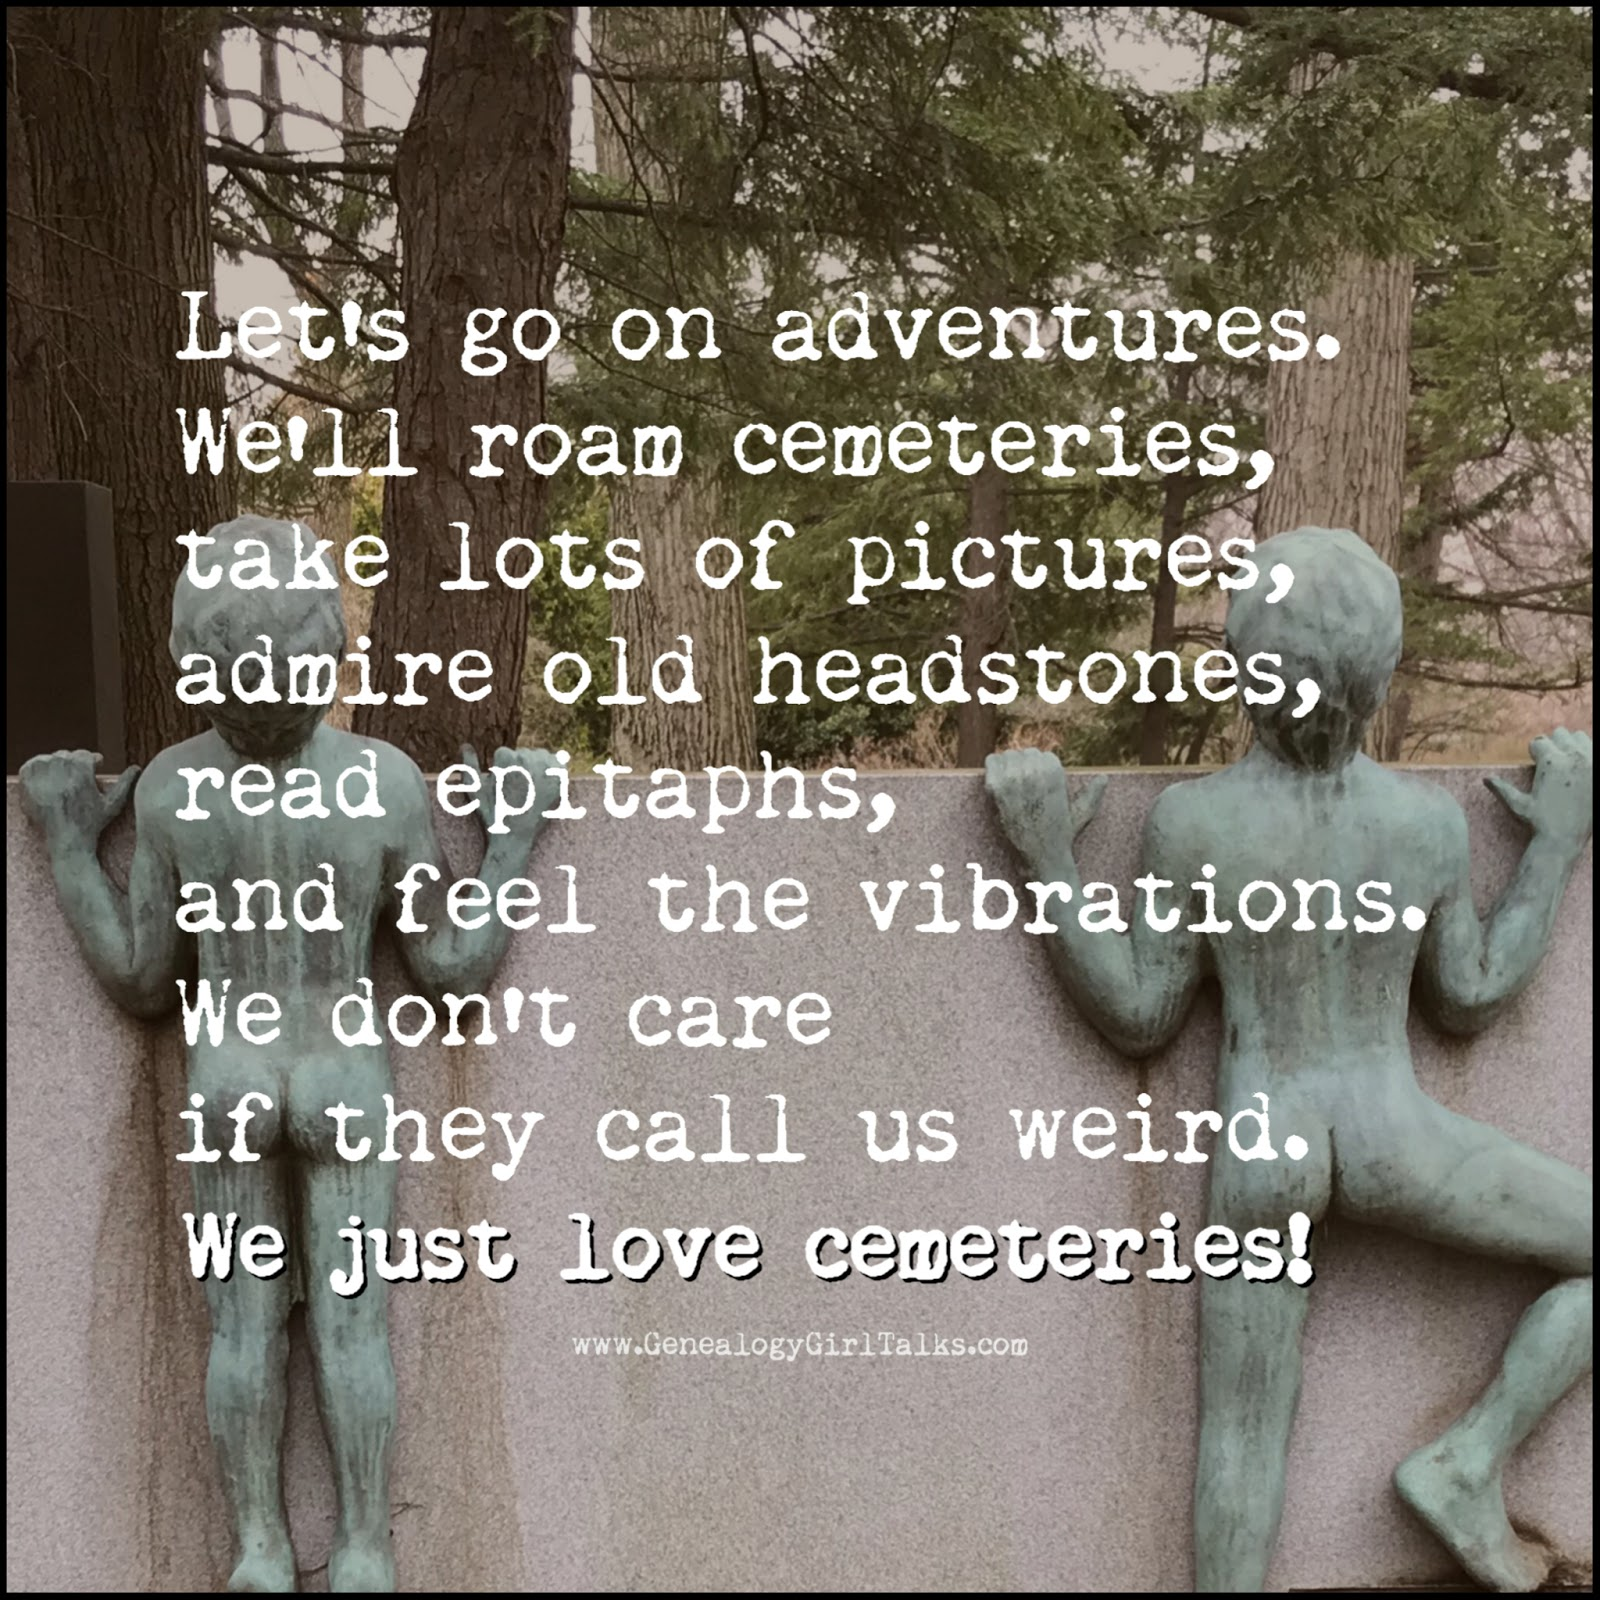 adventures (Poetry by M.Dickerson) - Genealogy Girl Talks